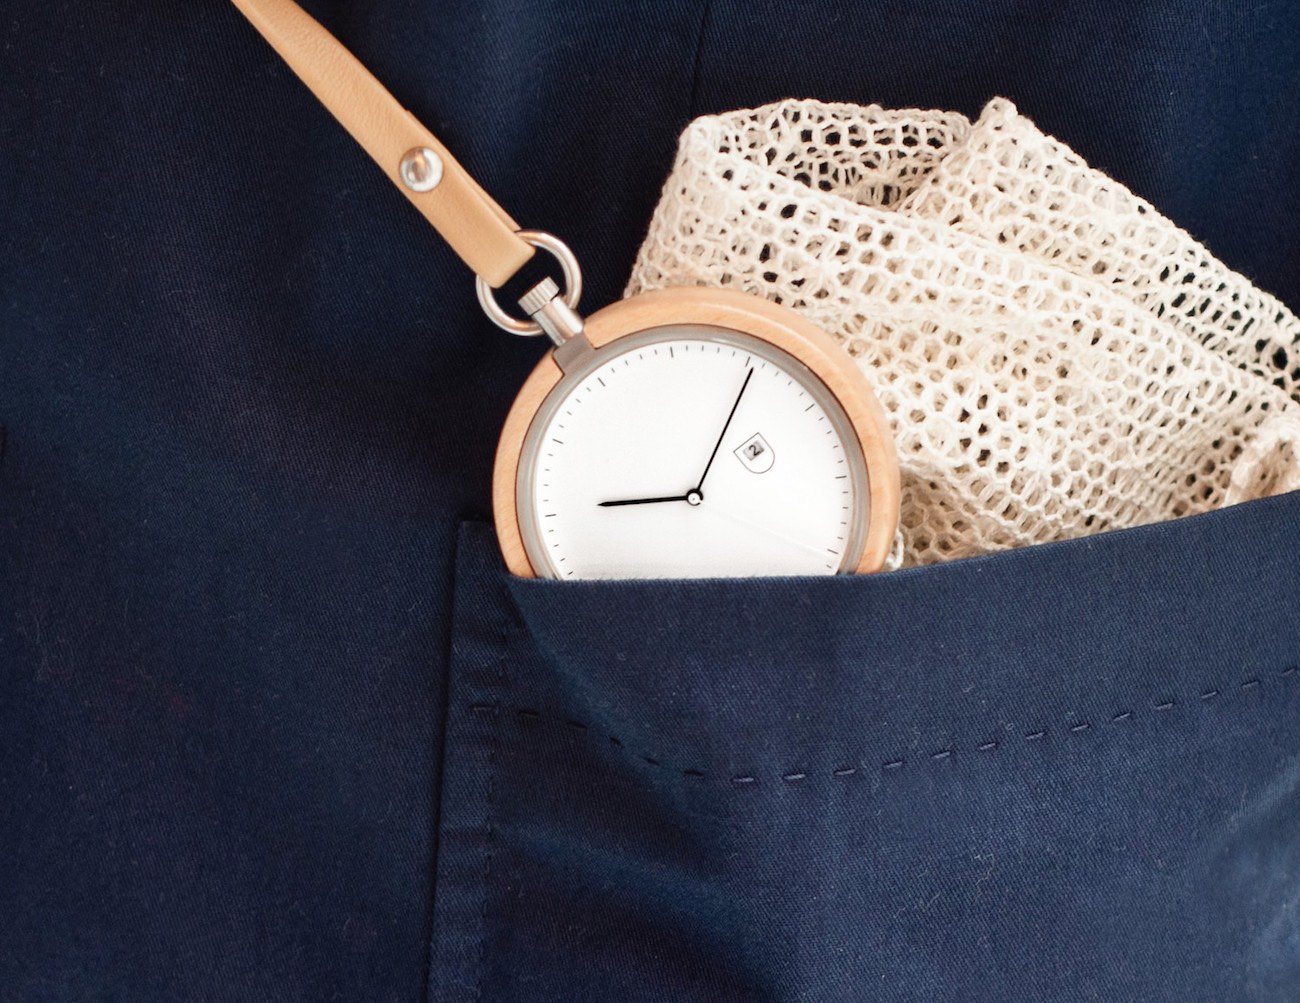 Calendar+Maple+Pocket+Watch+By+MMT